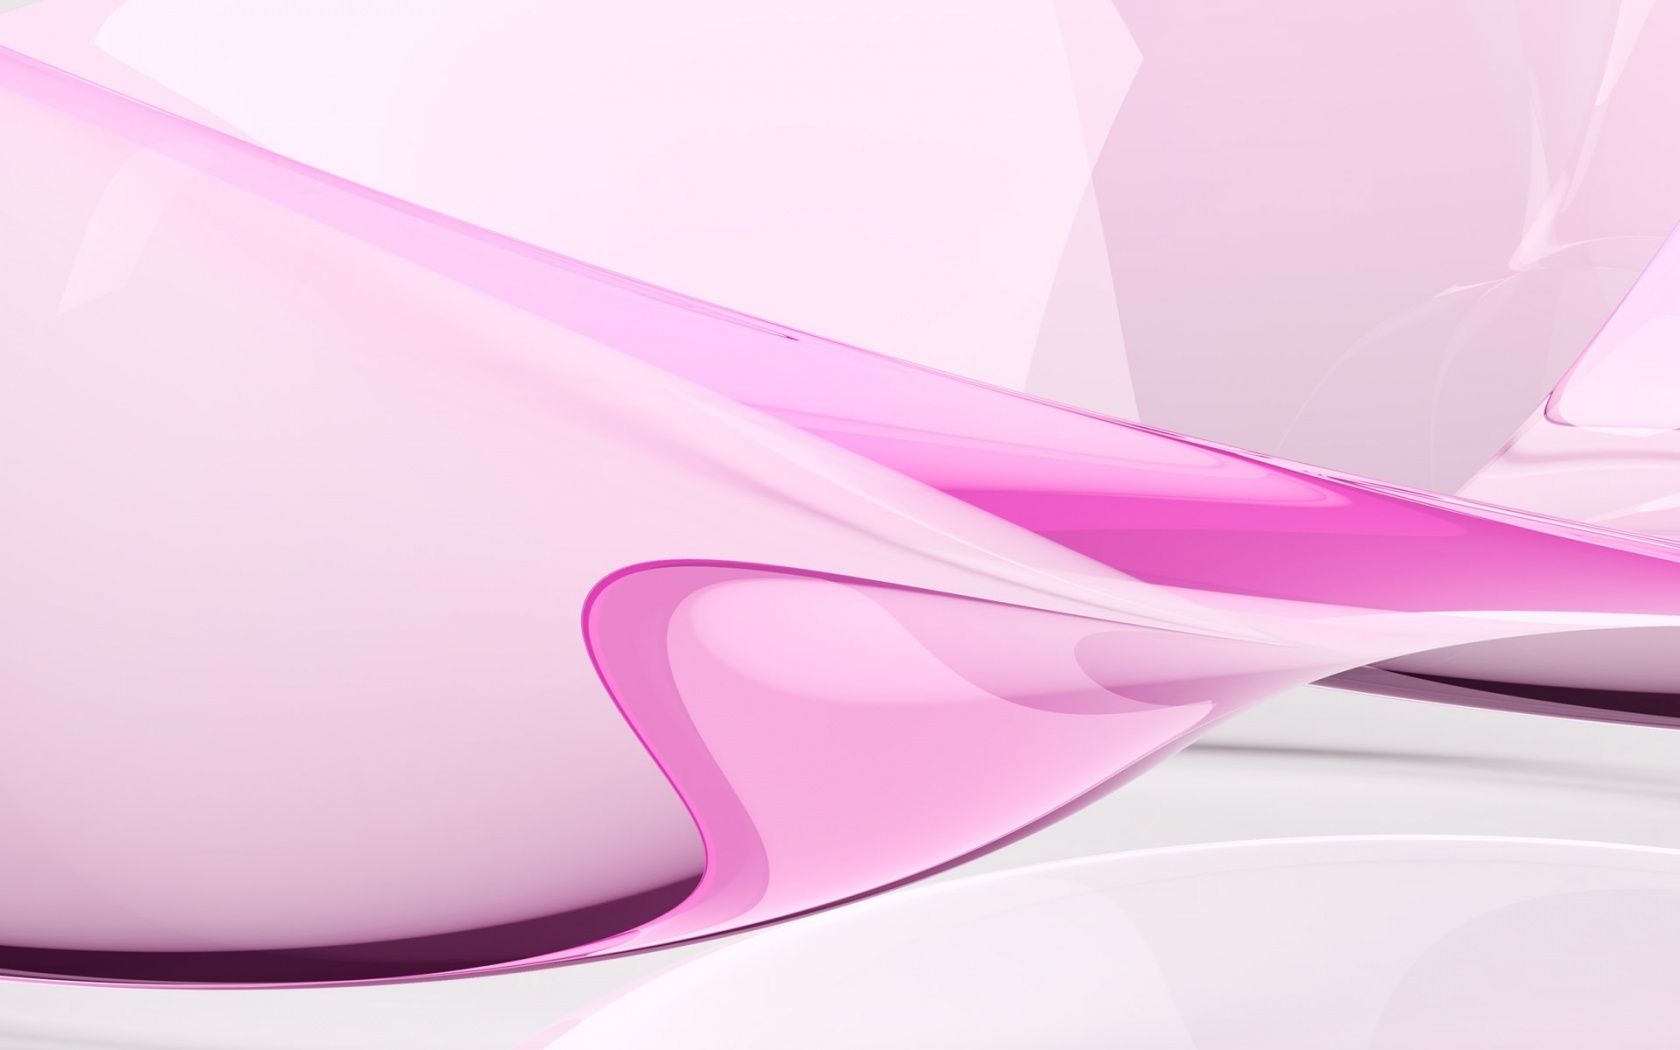 3d Fractal Wallpapers Hd Pink Abstract Designs Wallpapers In Jpg Format For Free